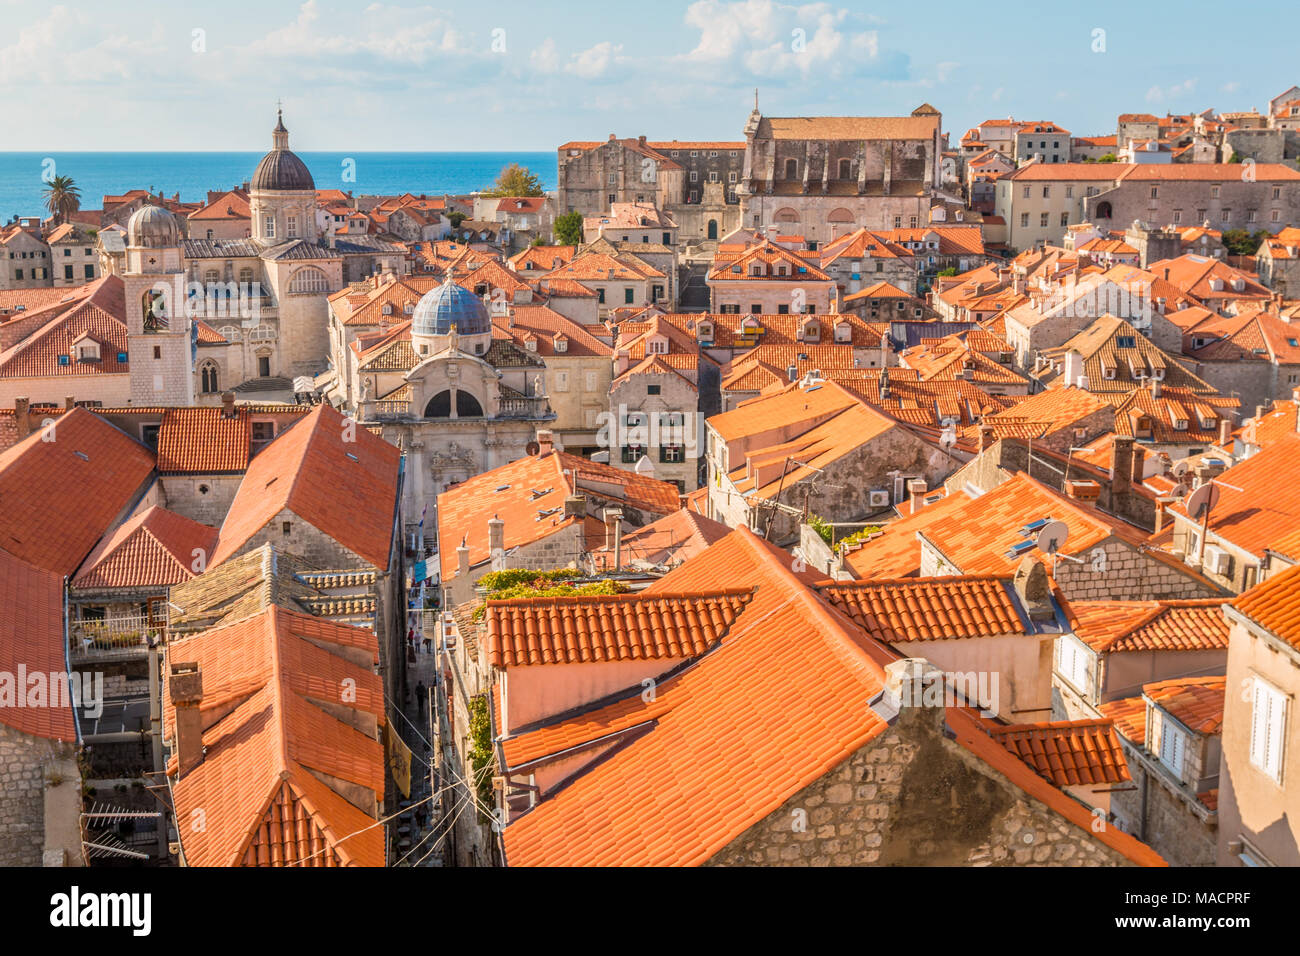 Old city of Dubrovnik in Croatia - Stock Image